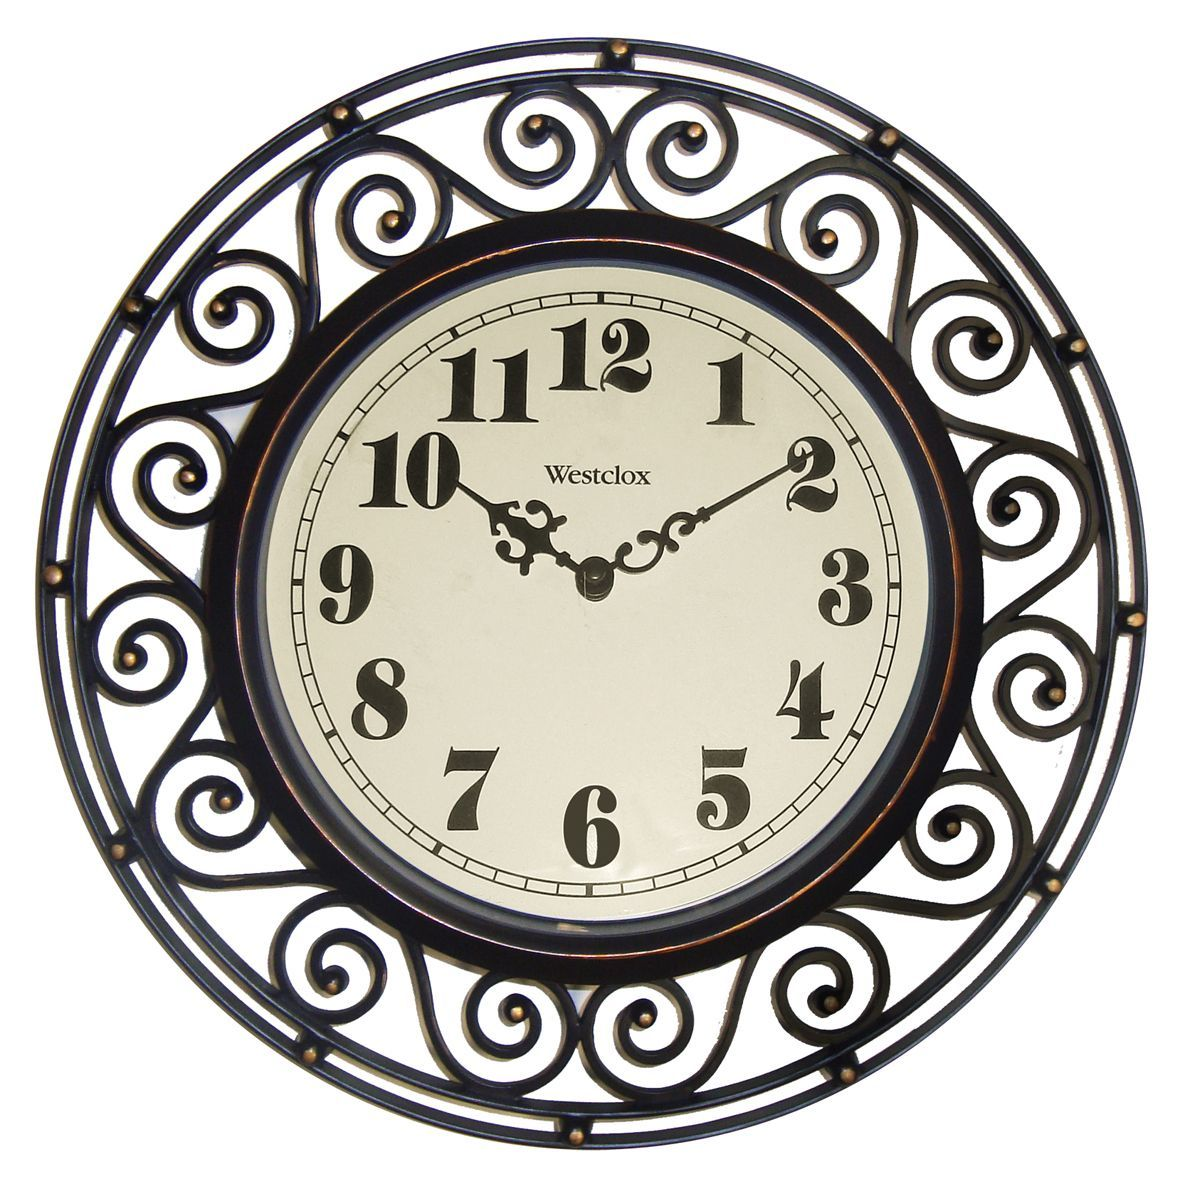 Westclox 12 Inch Detailed Wall Clock With Images Metal Wall Clock Wall Clock Round Wall Clocks